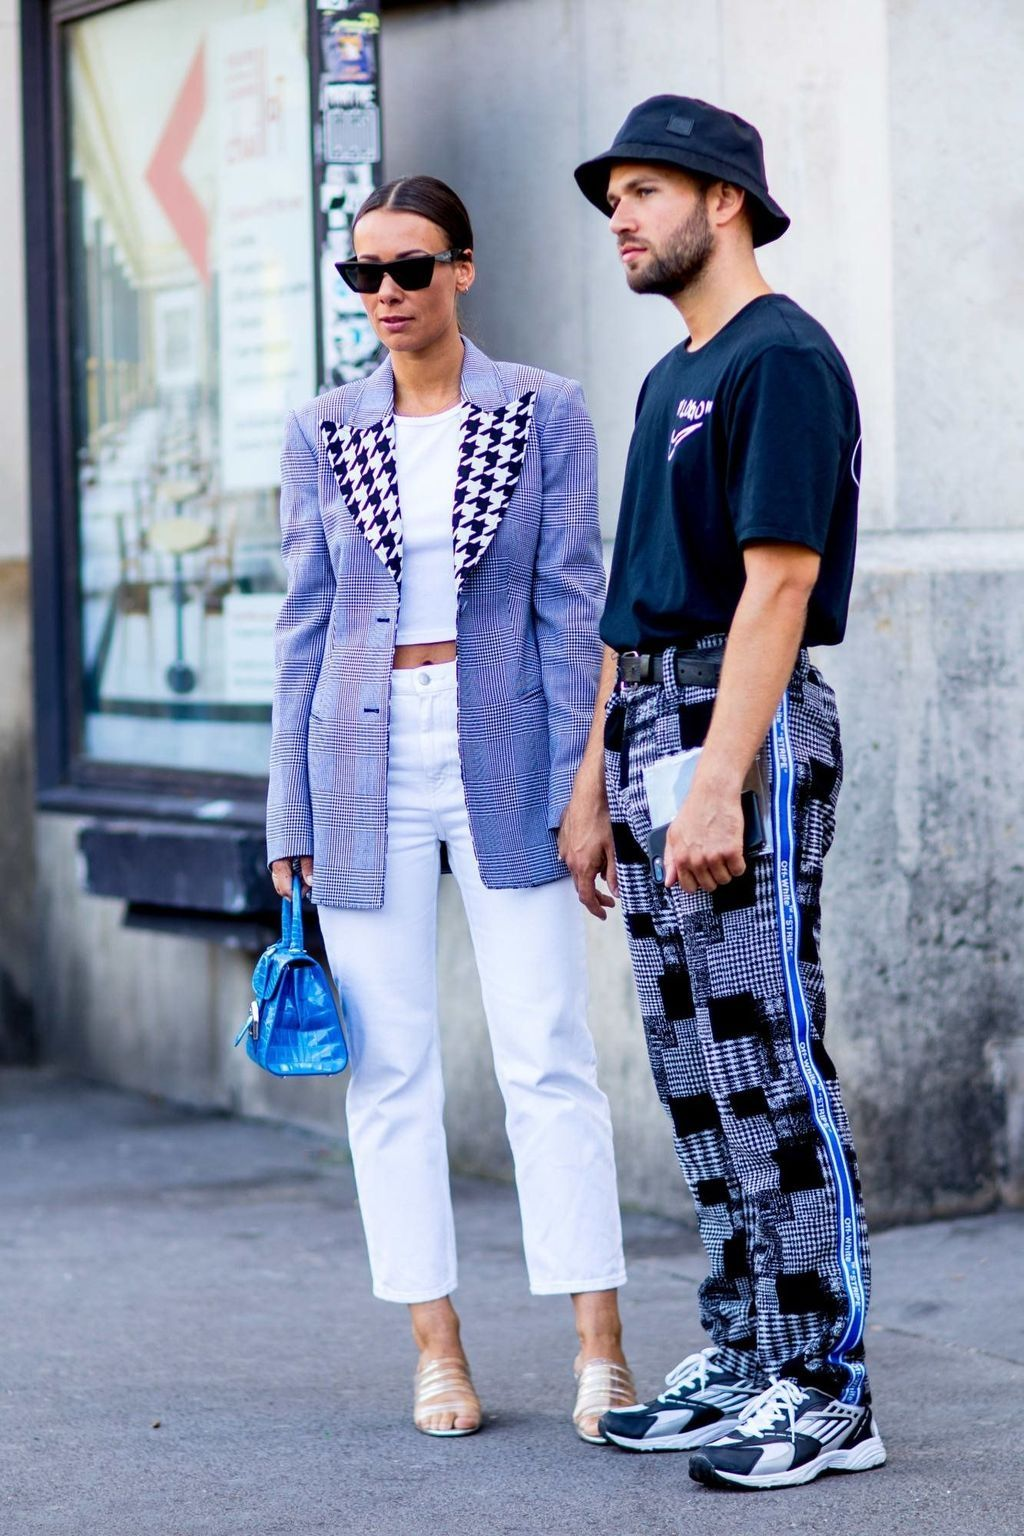 47 Fascinating Street Style Outfit Ideas You Can Copy